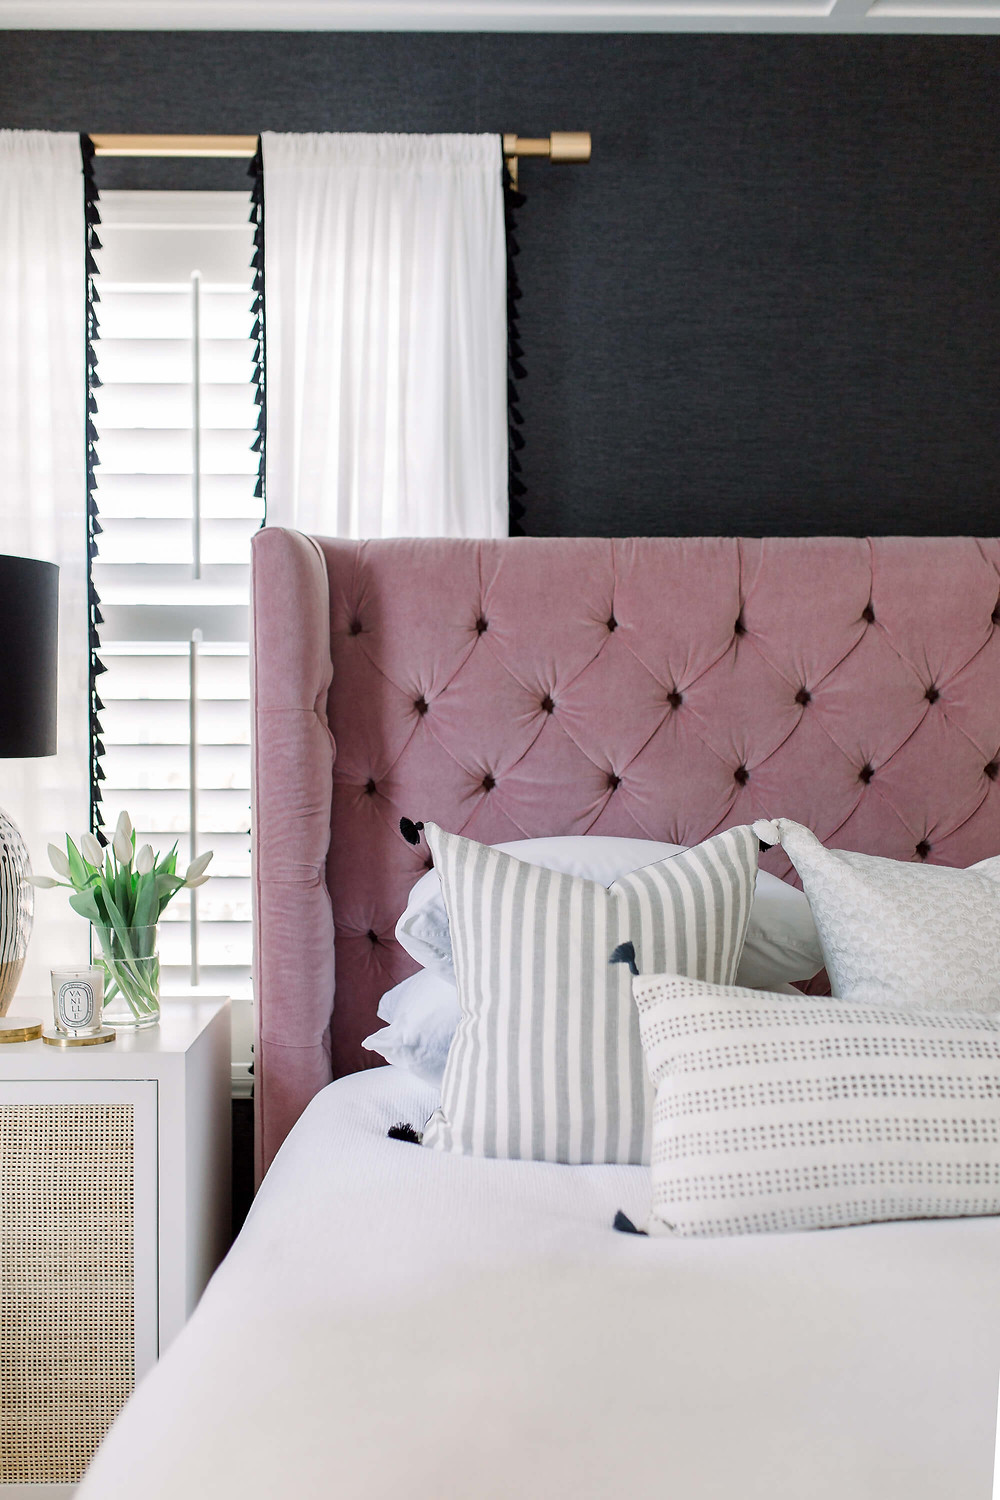 Dusty pink tufted headboard, white and grey striped cushions, black grass cloth wall paper. White drapes, plantation shutters and brass curtain rail.